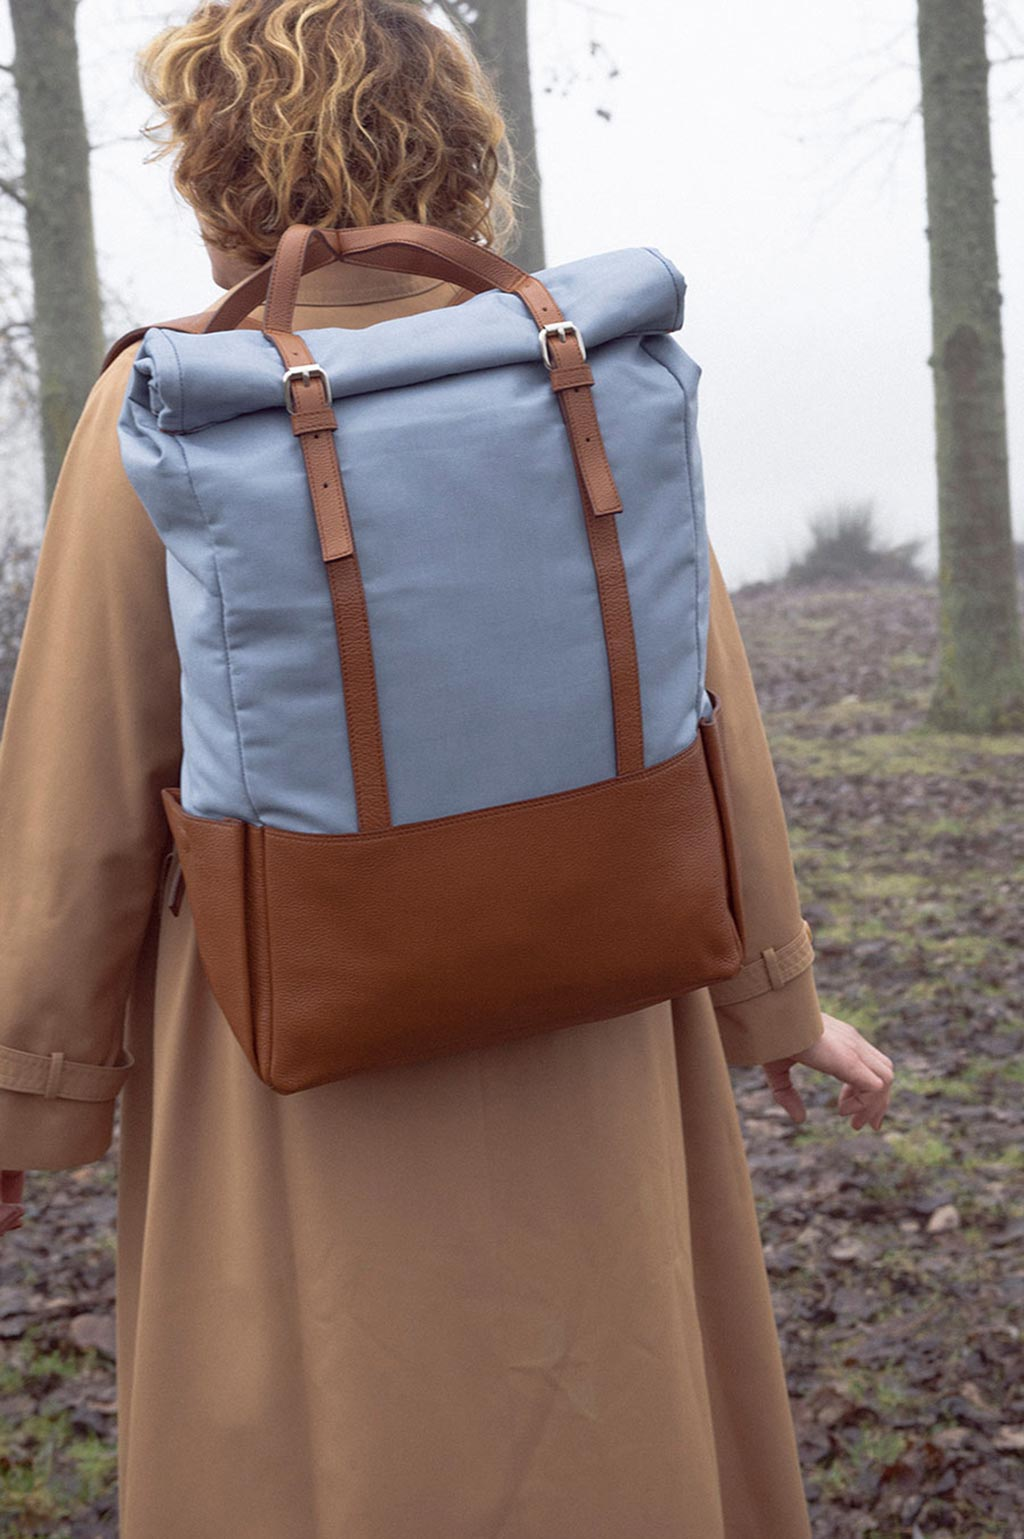 voyager-backpack-with-crisscrossing-straps-0